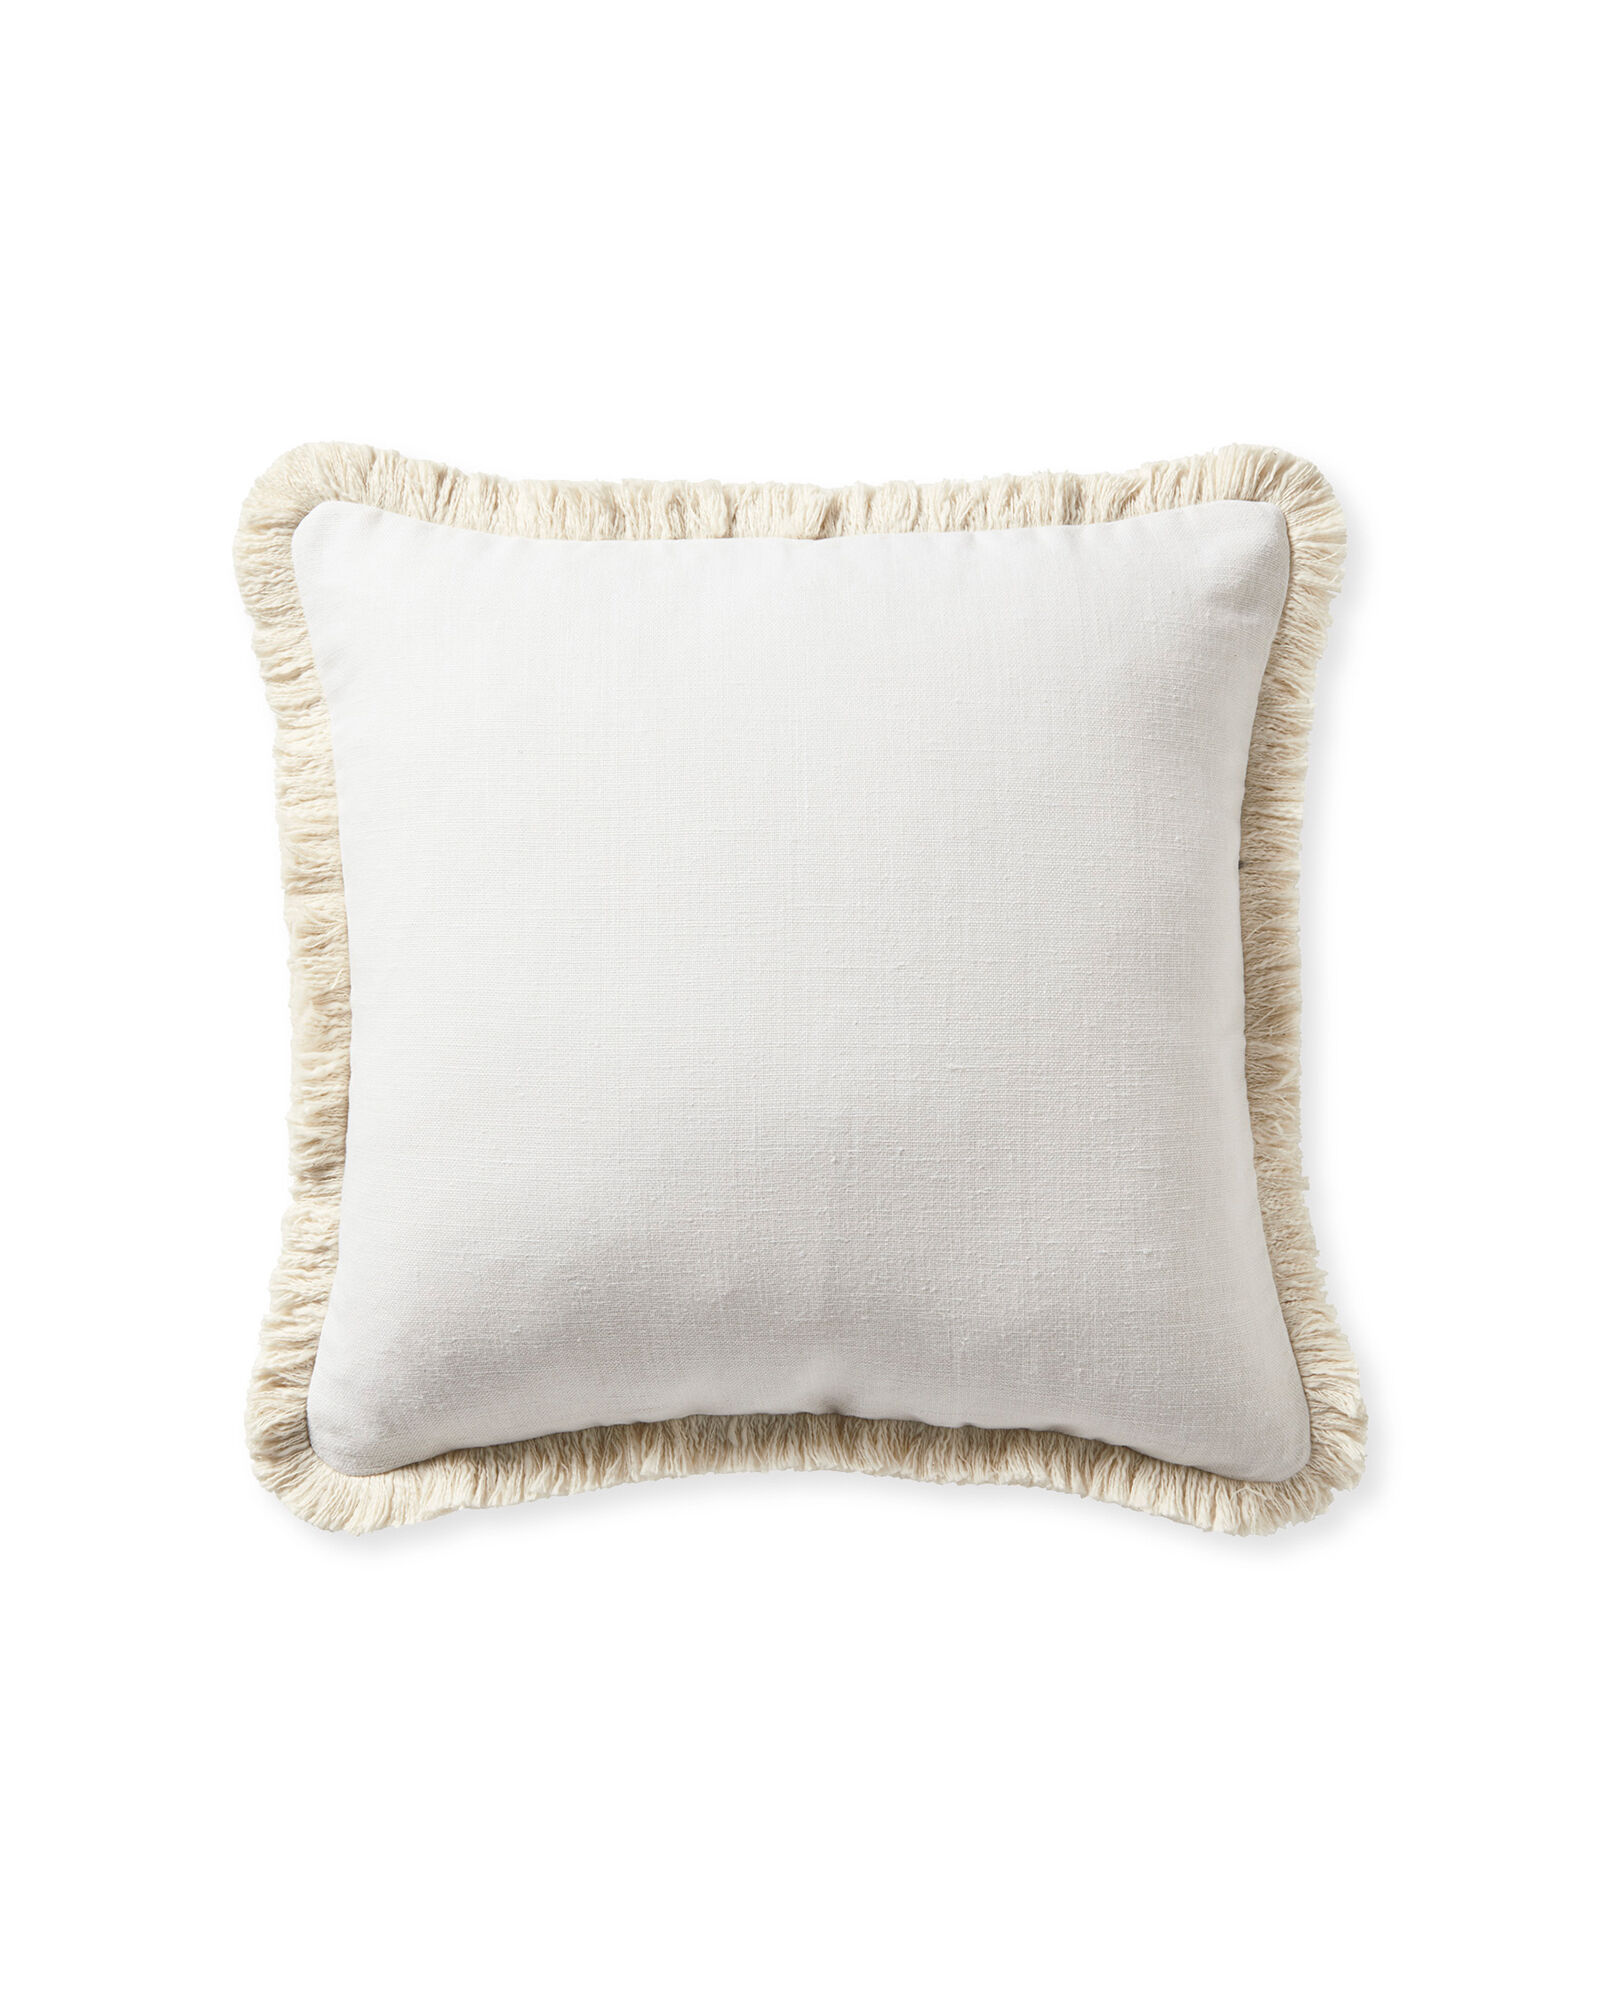 Bowden Pillow Cover, White